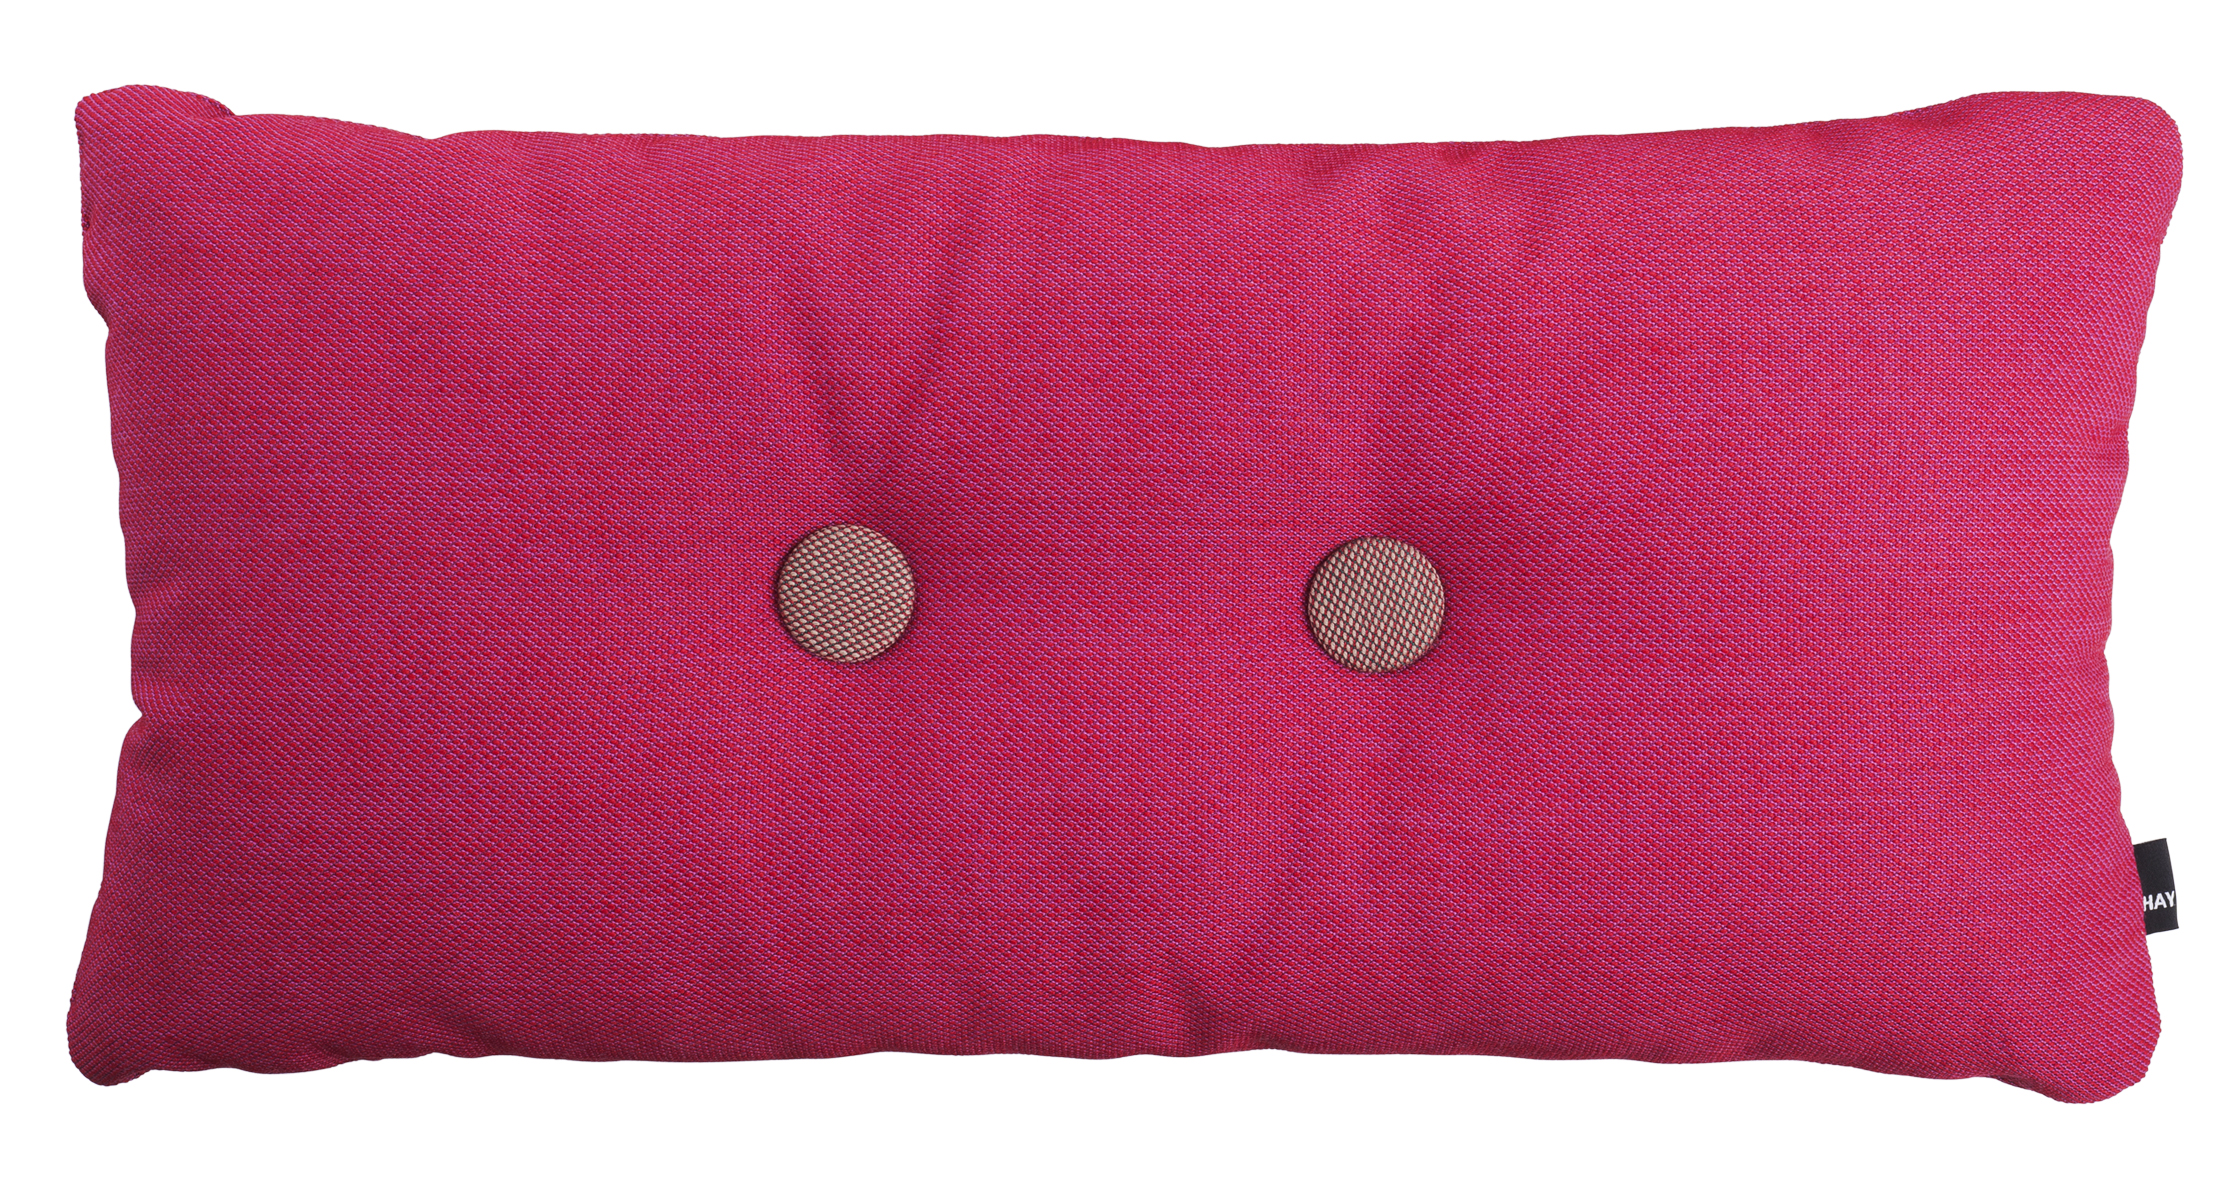 Dot Cushion 2x2 Steelcut Trio pink 653.jpg